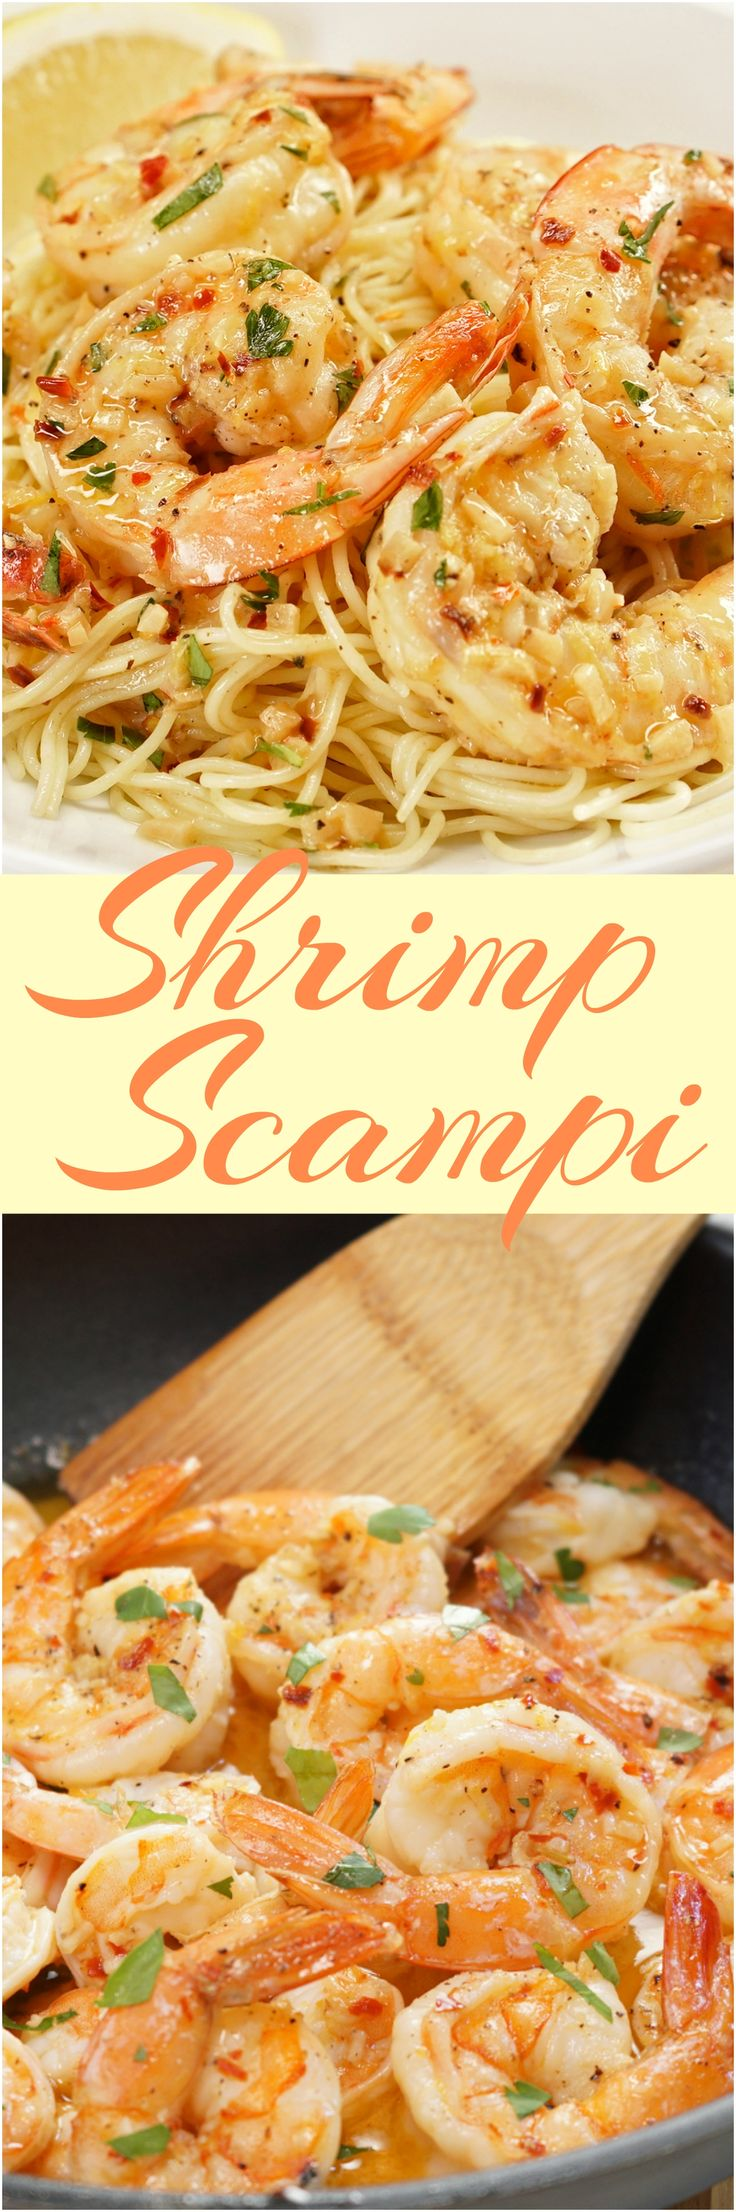 Plump shrimp sautéed in a rich & buttery, bright & lemony, herb & garlicky white wine scampi sauce, and tossed with linguine pasta. In just 30 minutes!